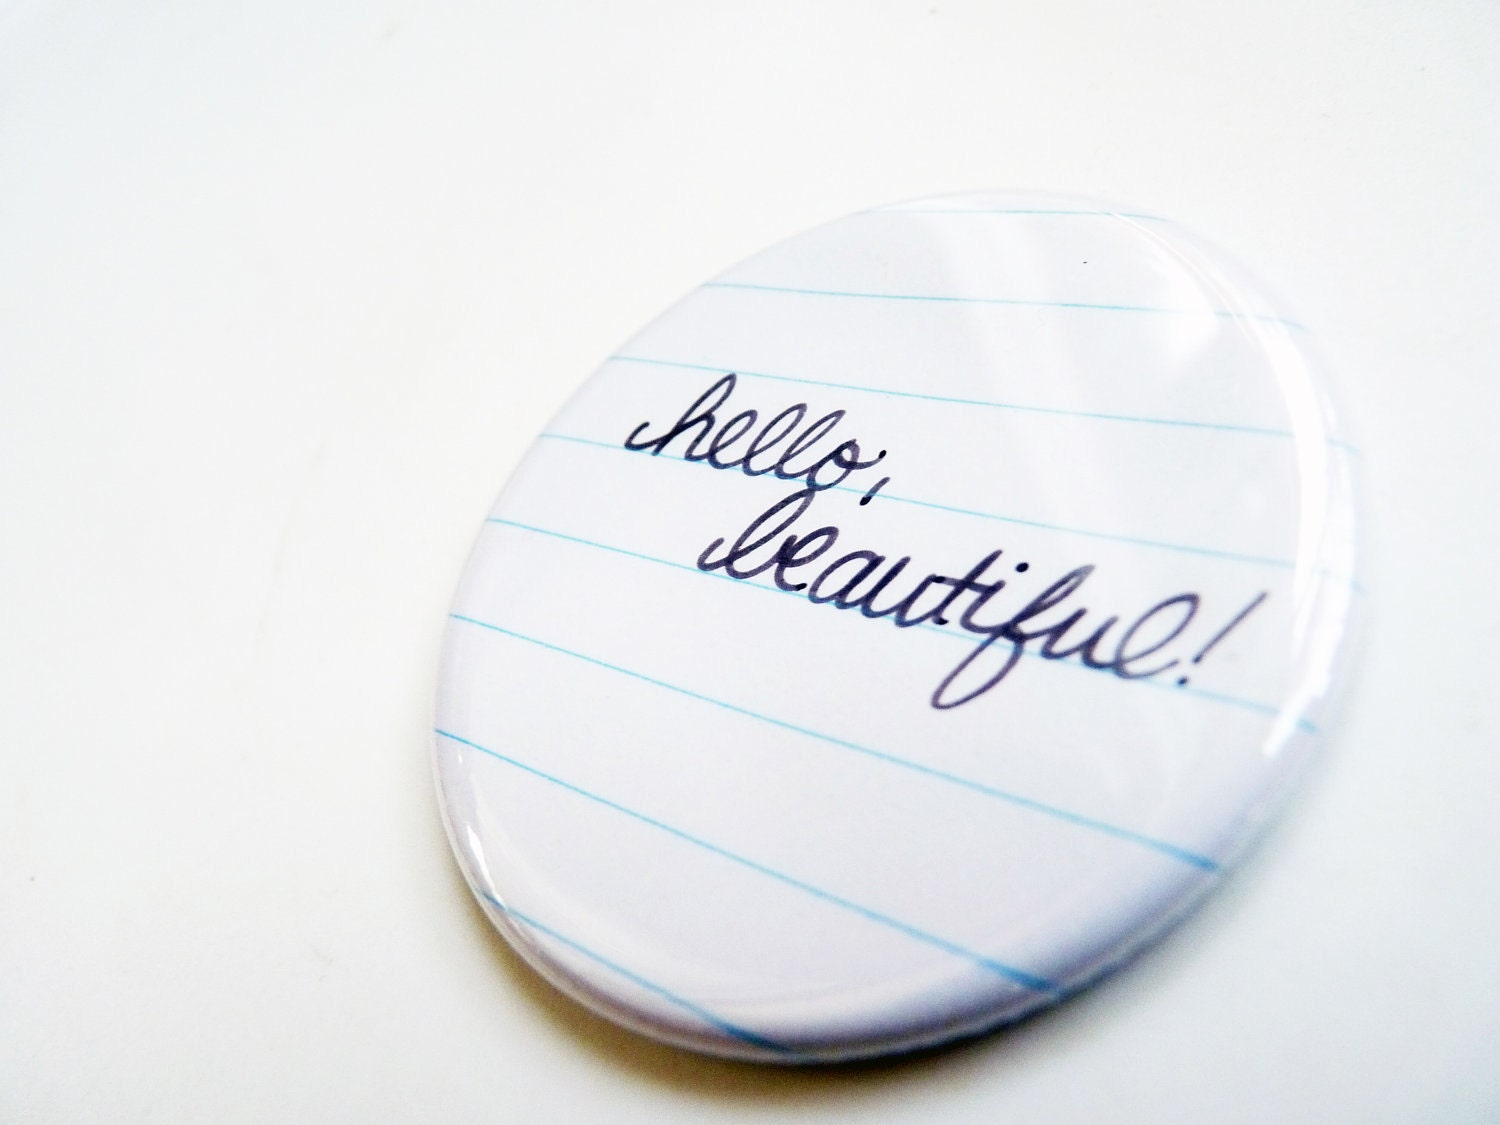 Hello Beautiful - Pocket Mirror - Great for Valentine's Day, Bridesmaid Gift, Under 5 Gift, Party Favors